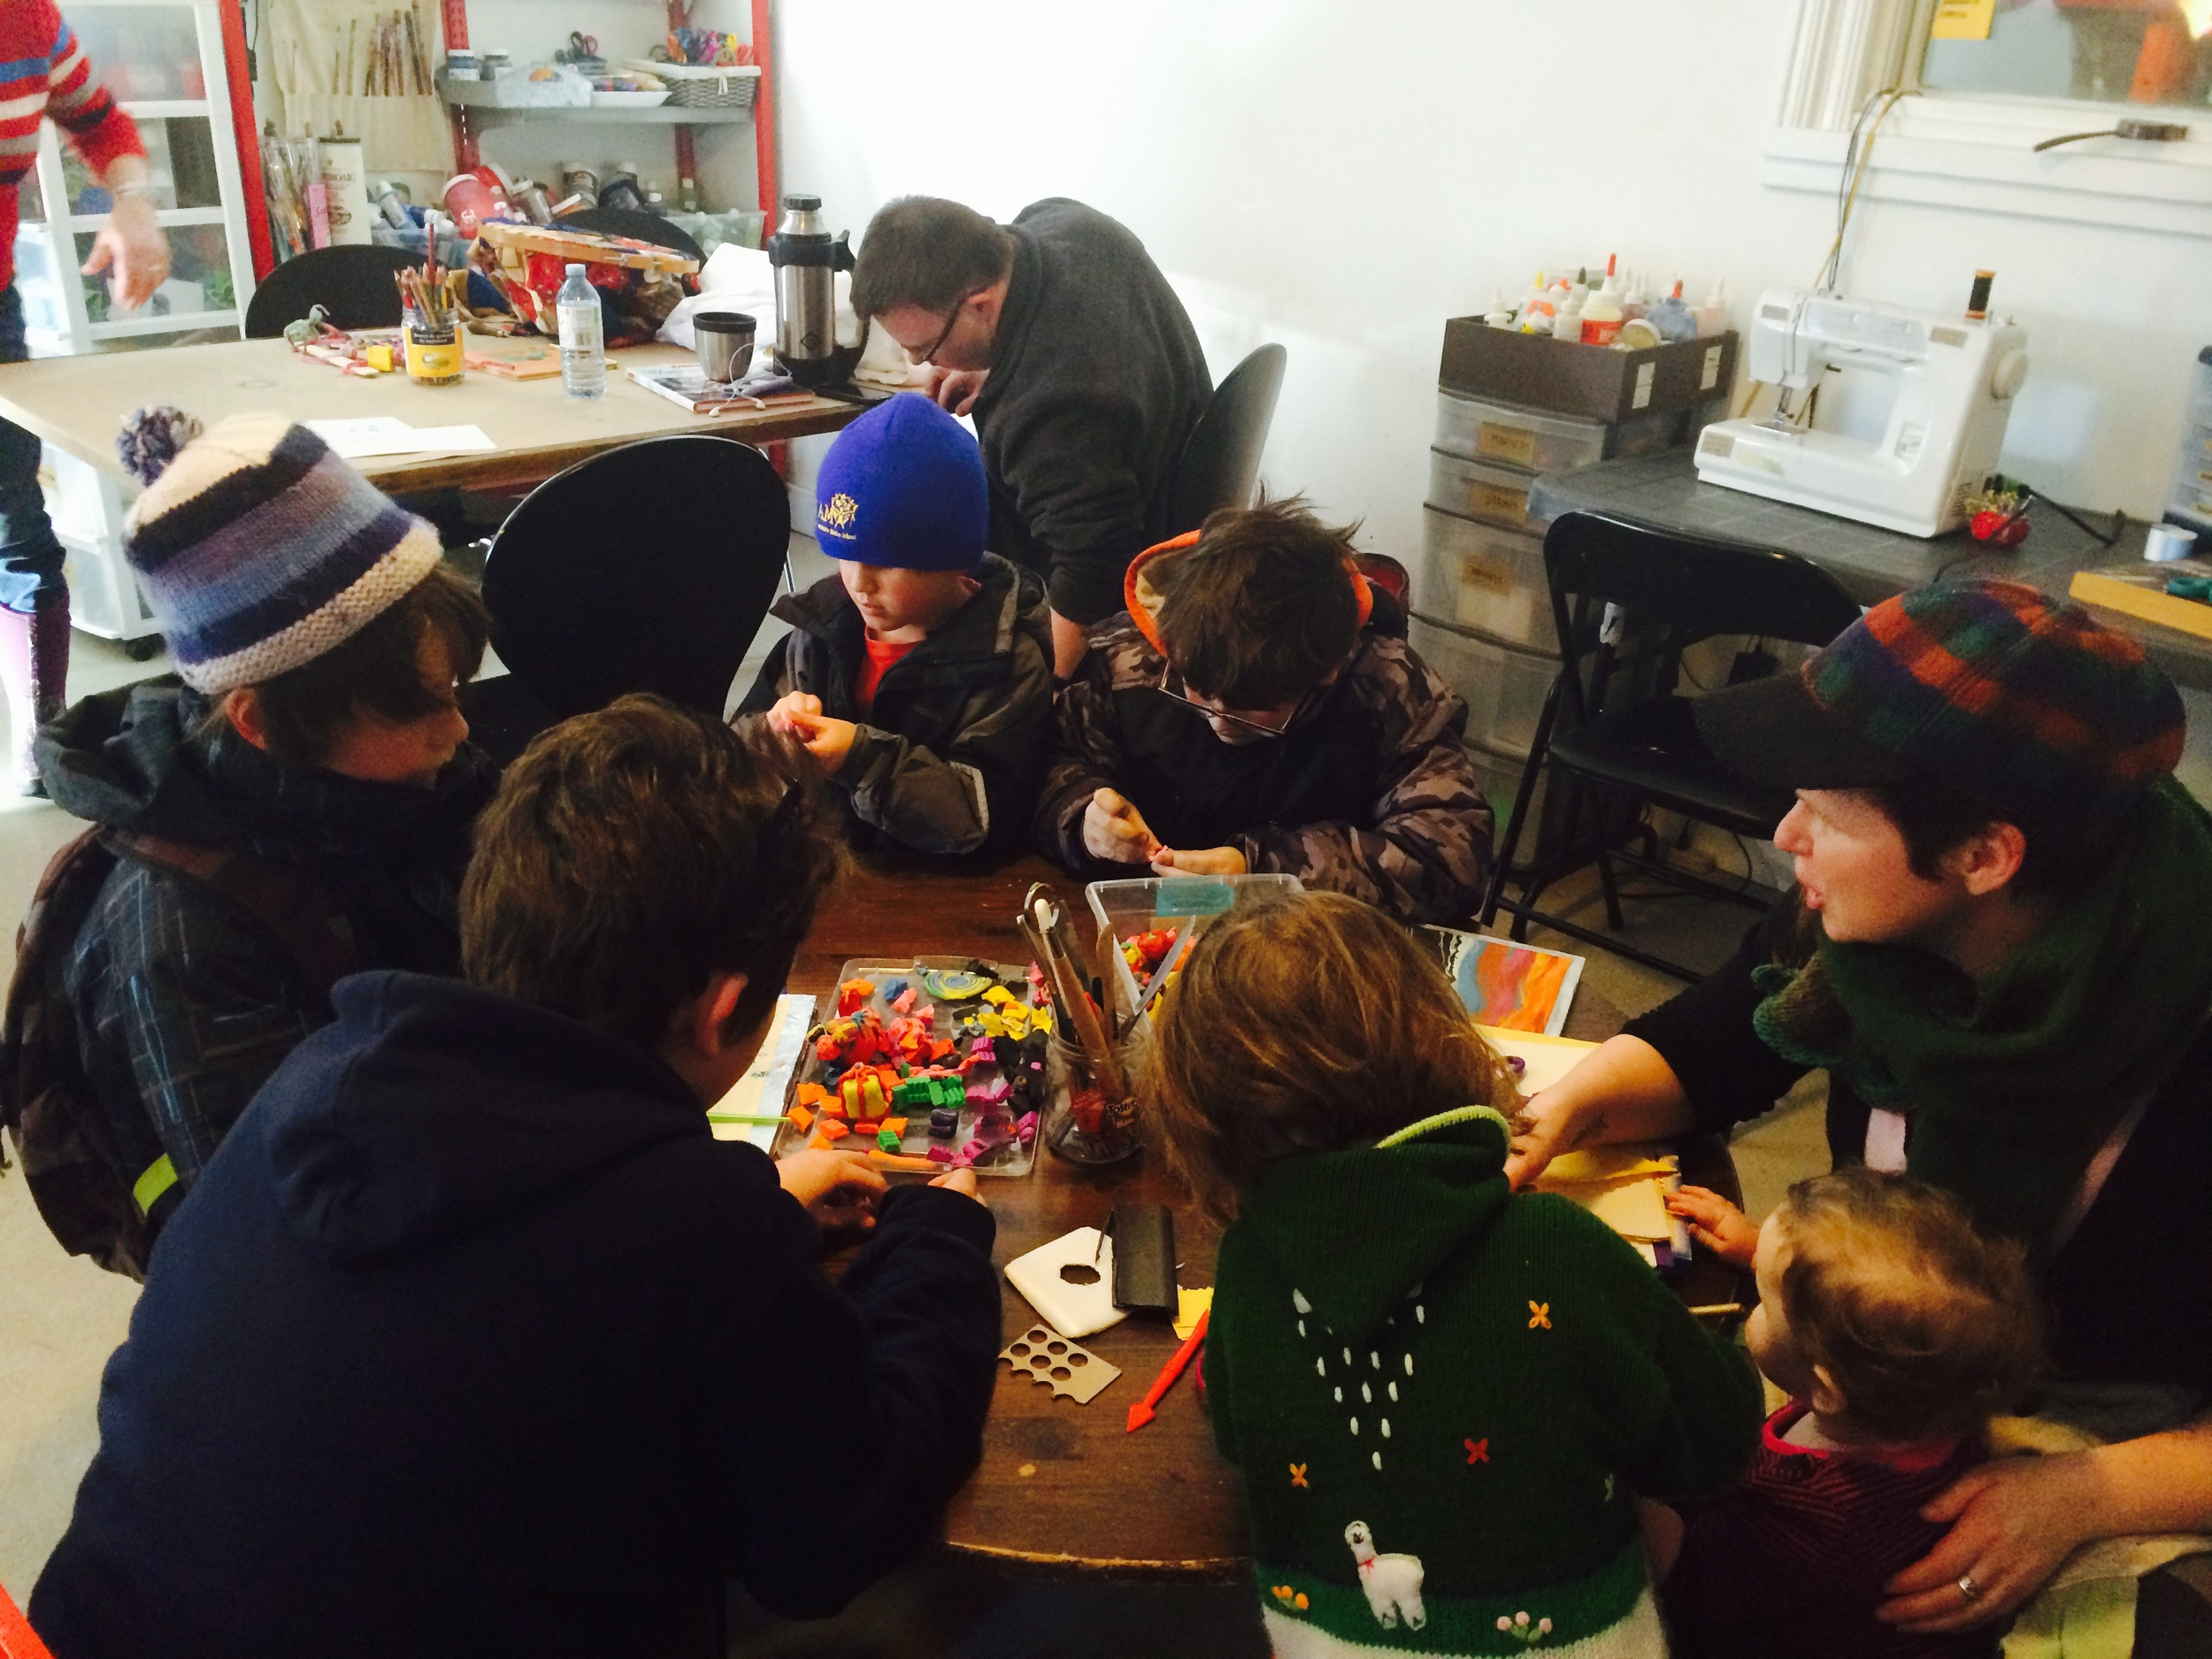 After school independent crowd mixed with preschoolers from the area - all busy at the kids' table with plasticine.